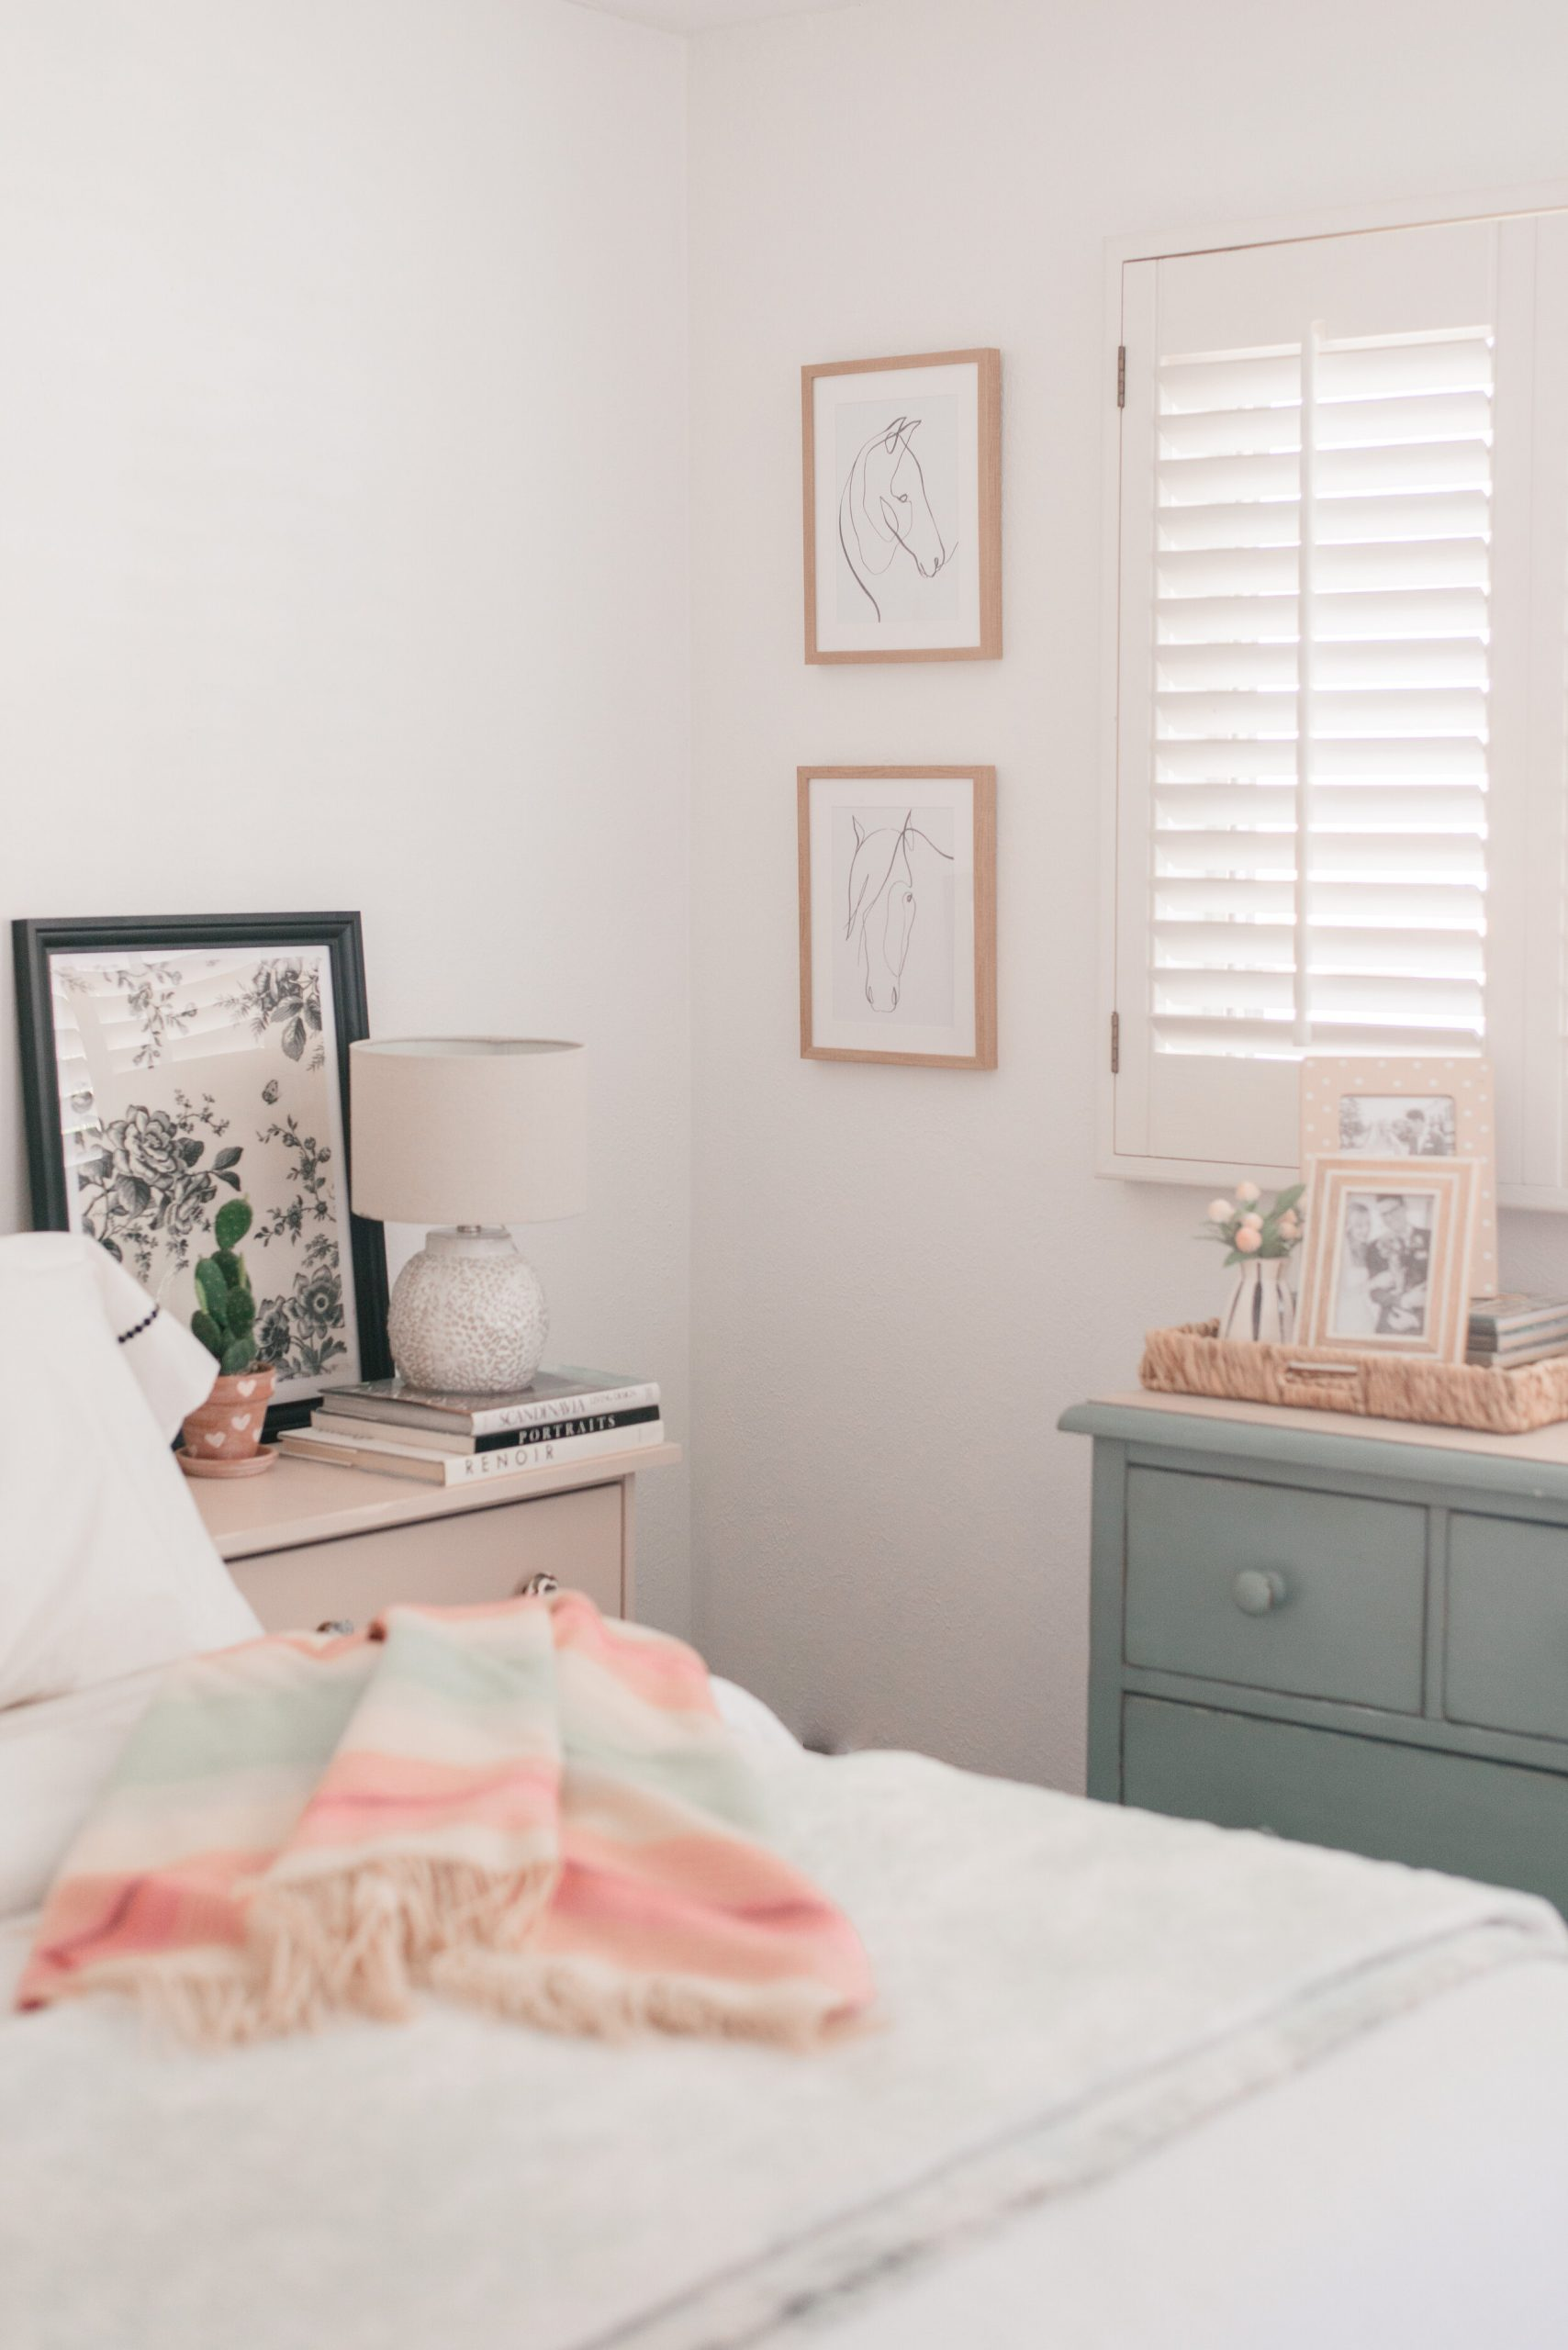 Cottage Style Spring Home Decor to Love: Floral Prints, Pastels & Woven Accents Galore!